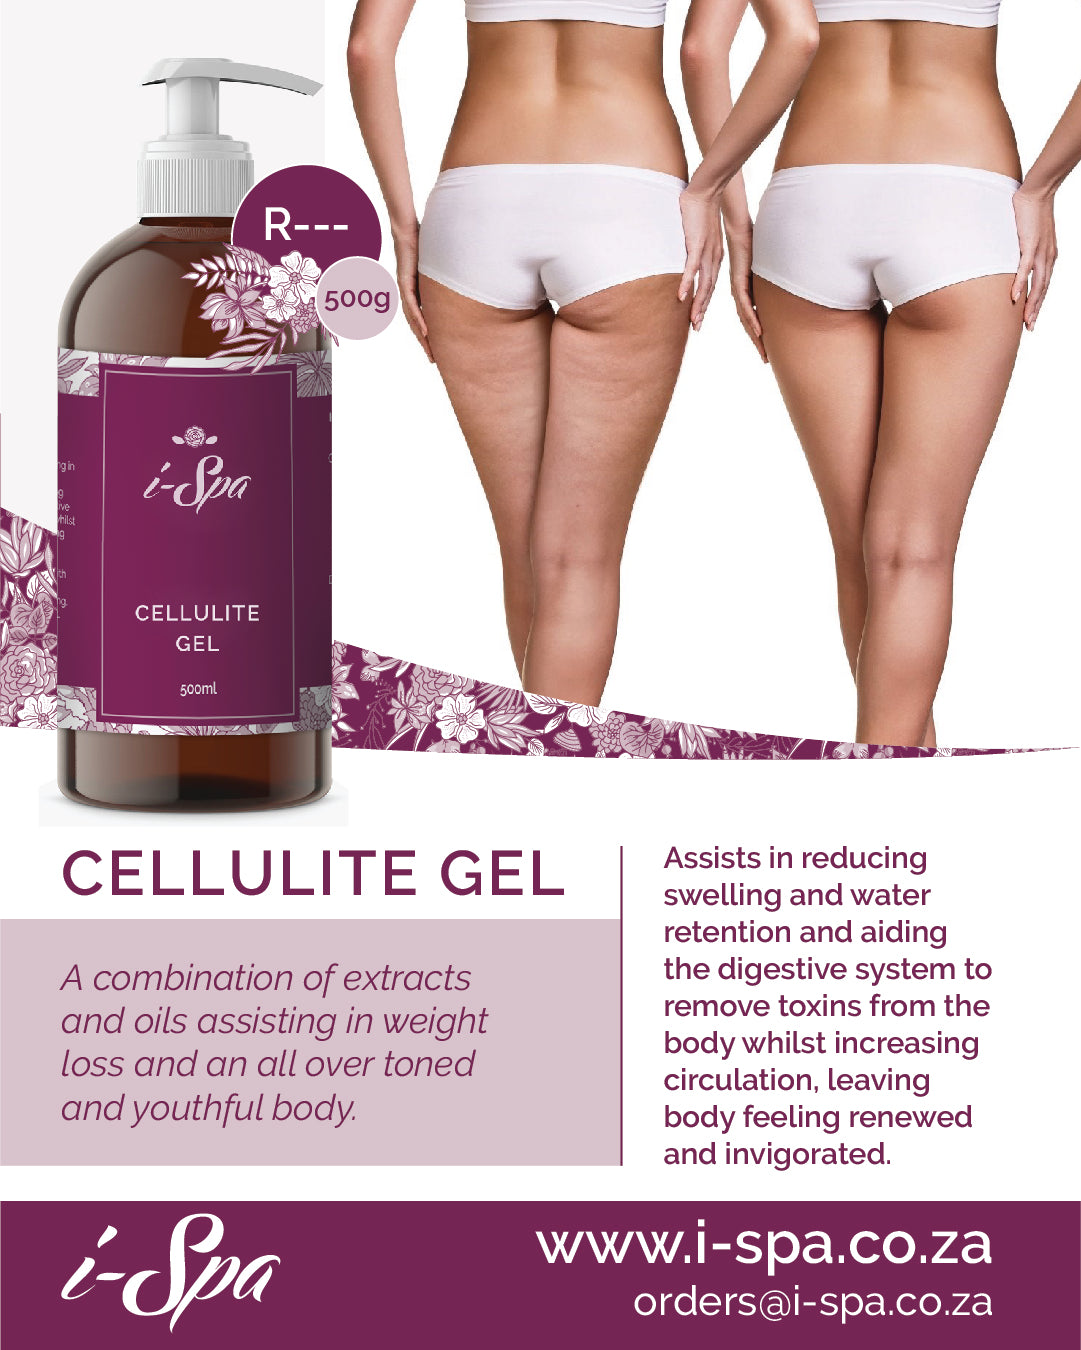 Cellulite gel - 500ml